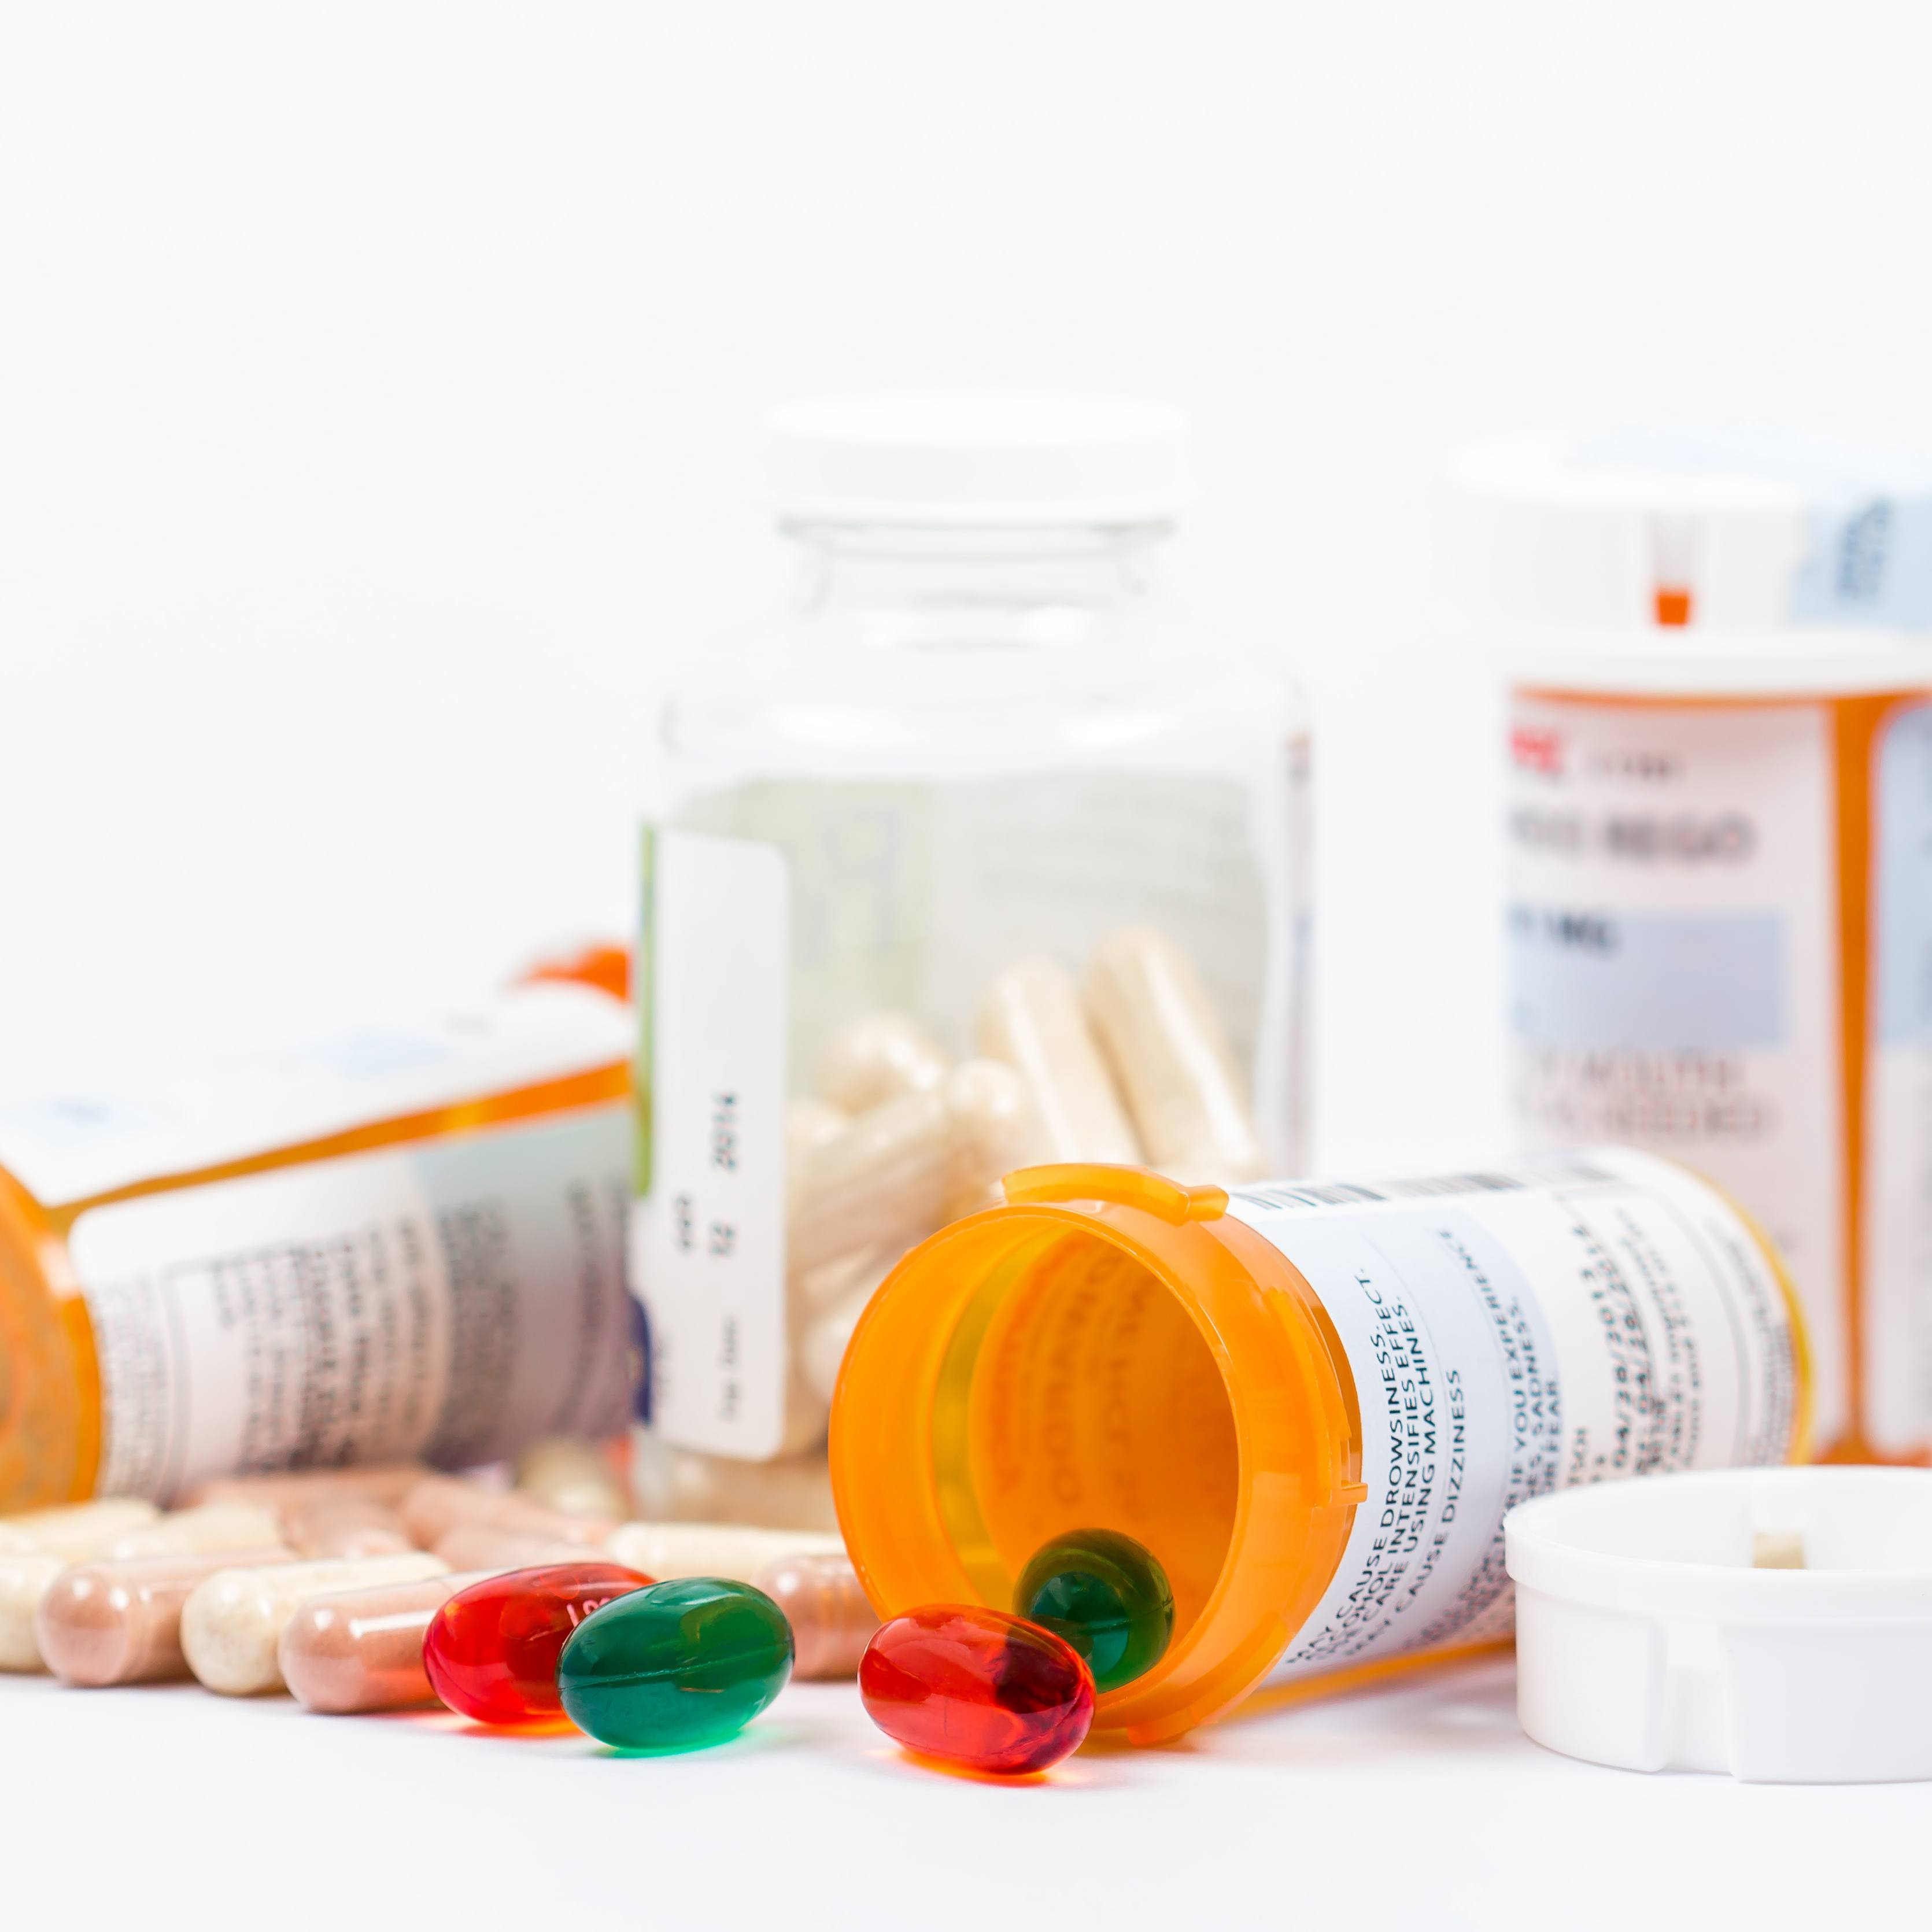 several prescription medicine bottles, some lying on their sides with pills and capsules spilling out